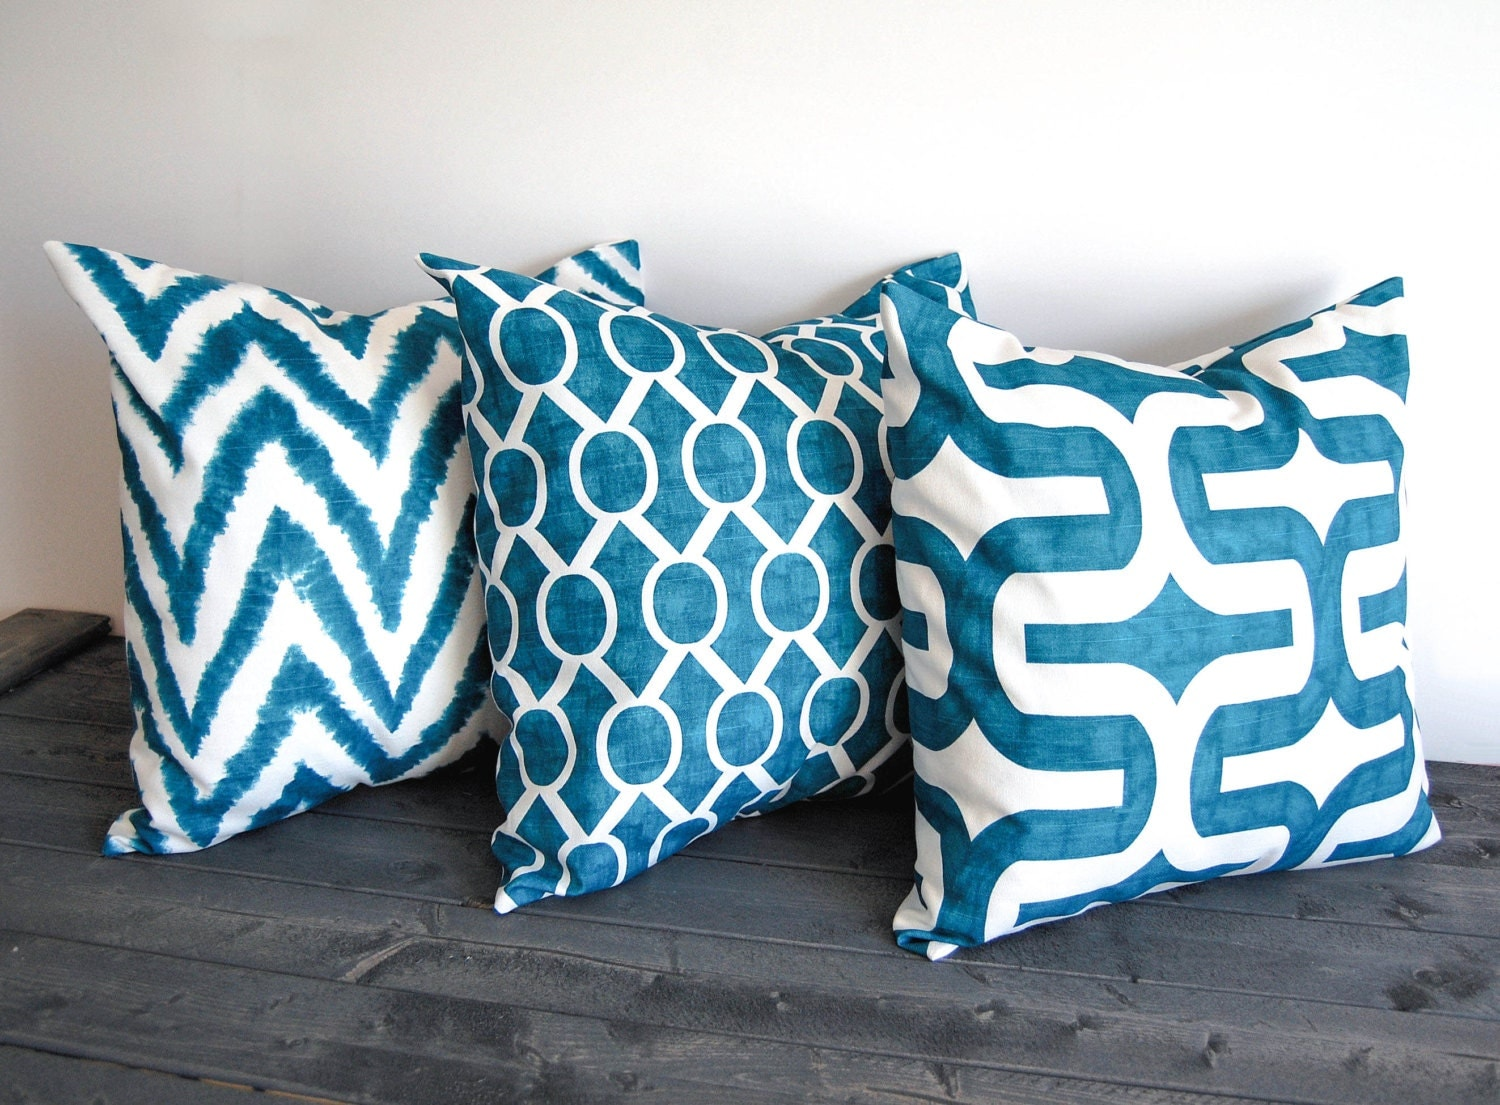 Throw Pillow Covers Teal : Teal throw pillow covers set of three 20 x 20 by ThePillowPeople